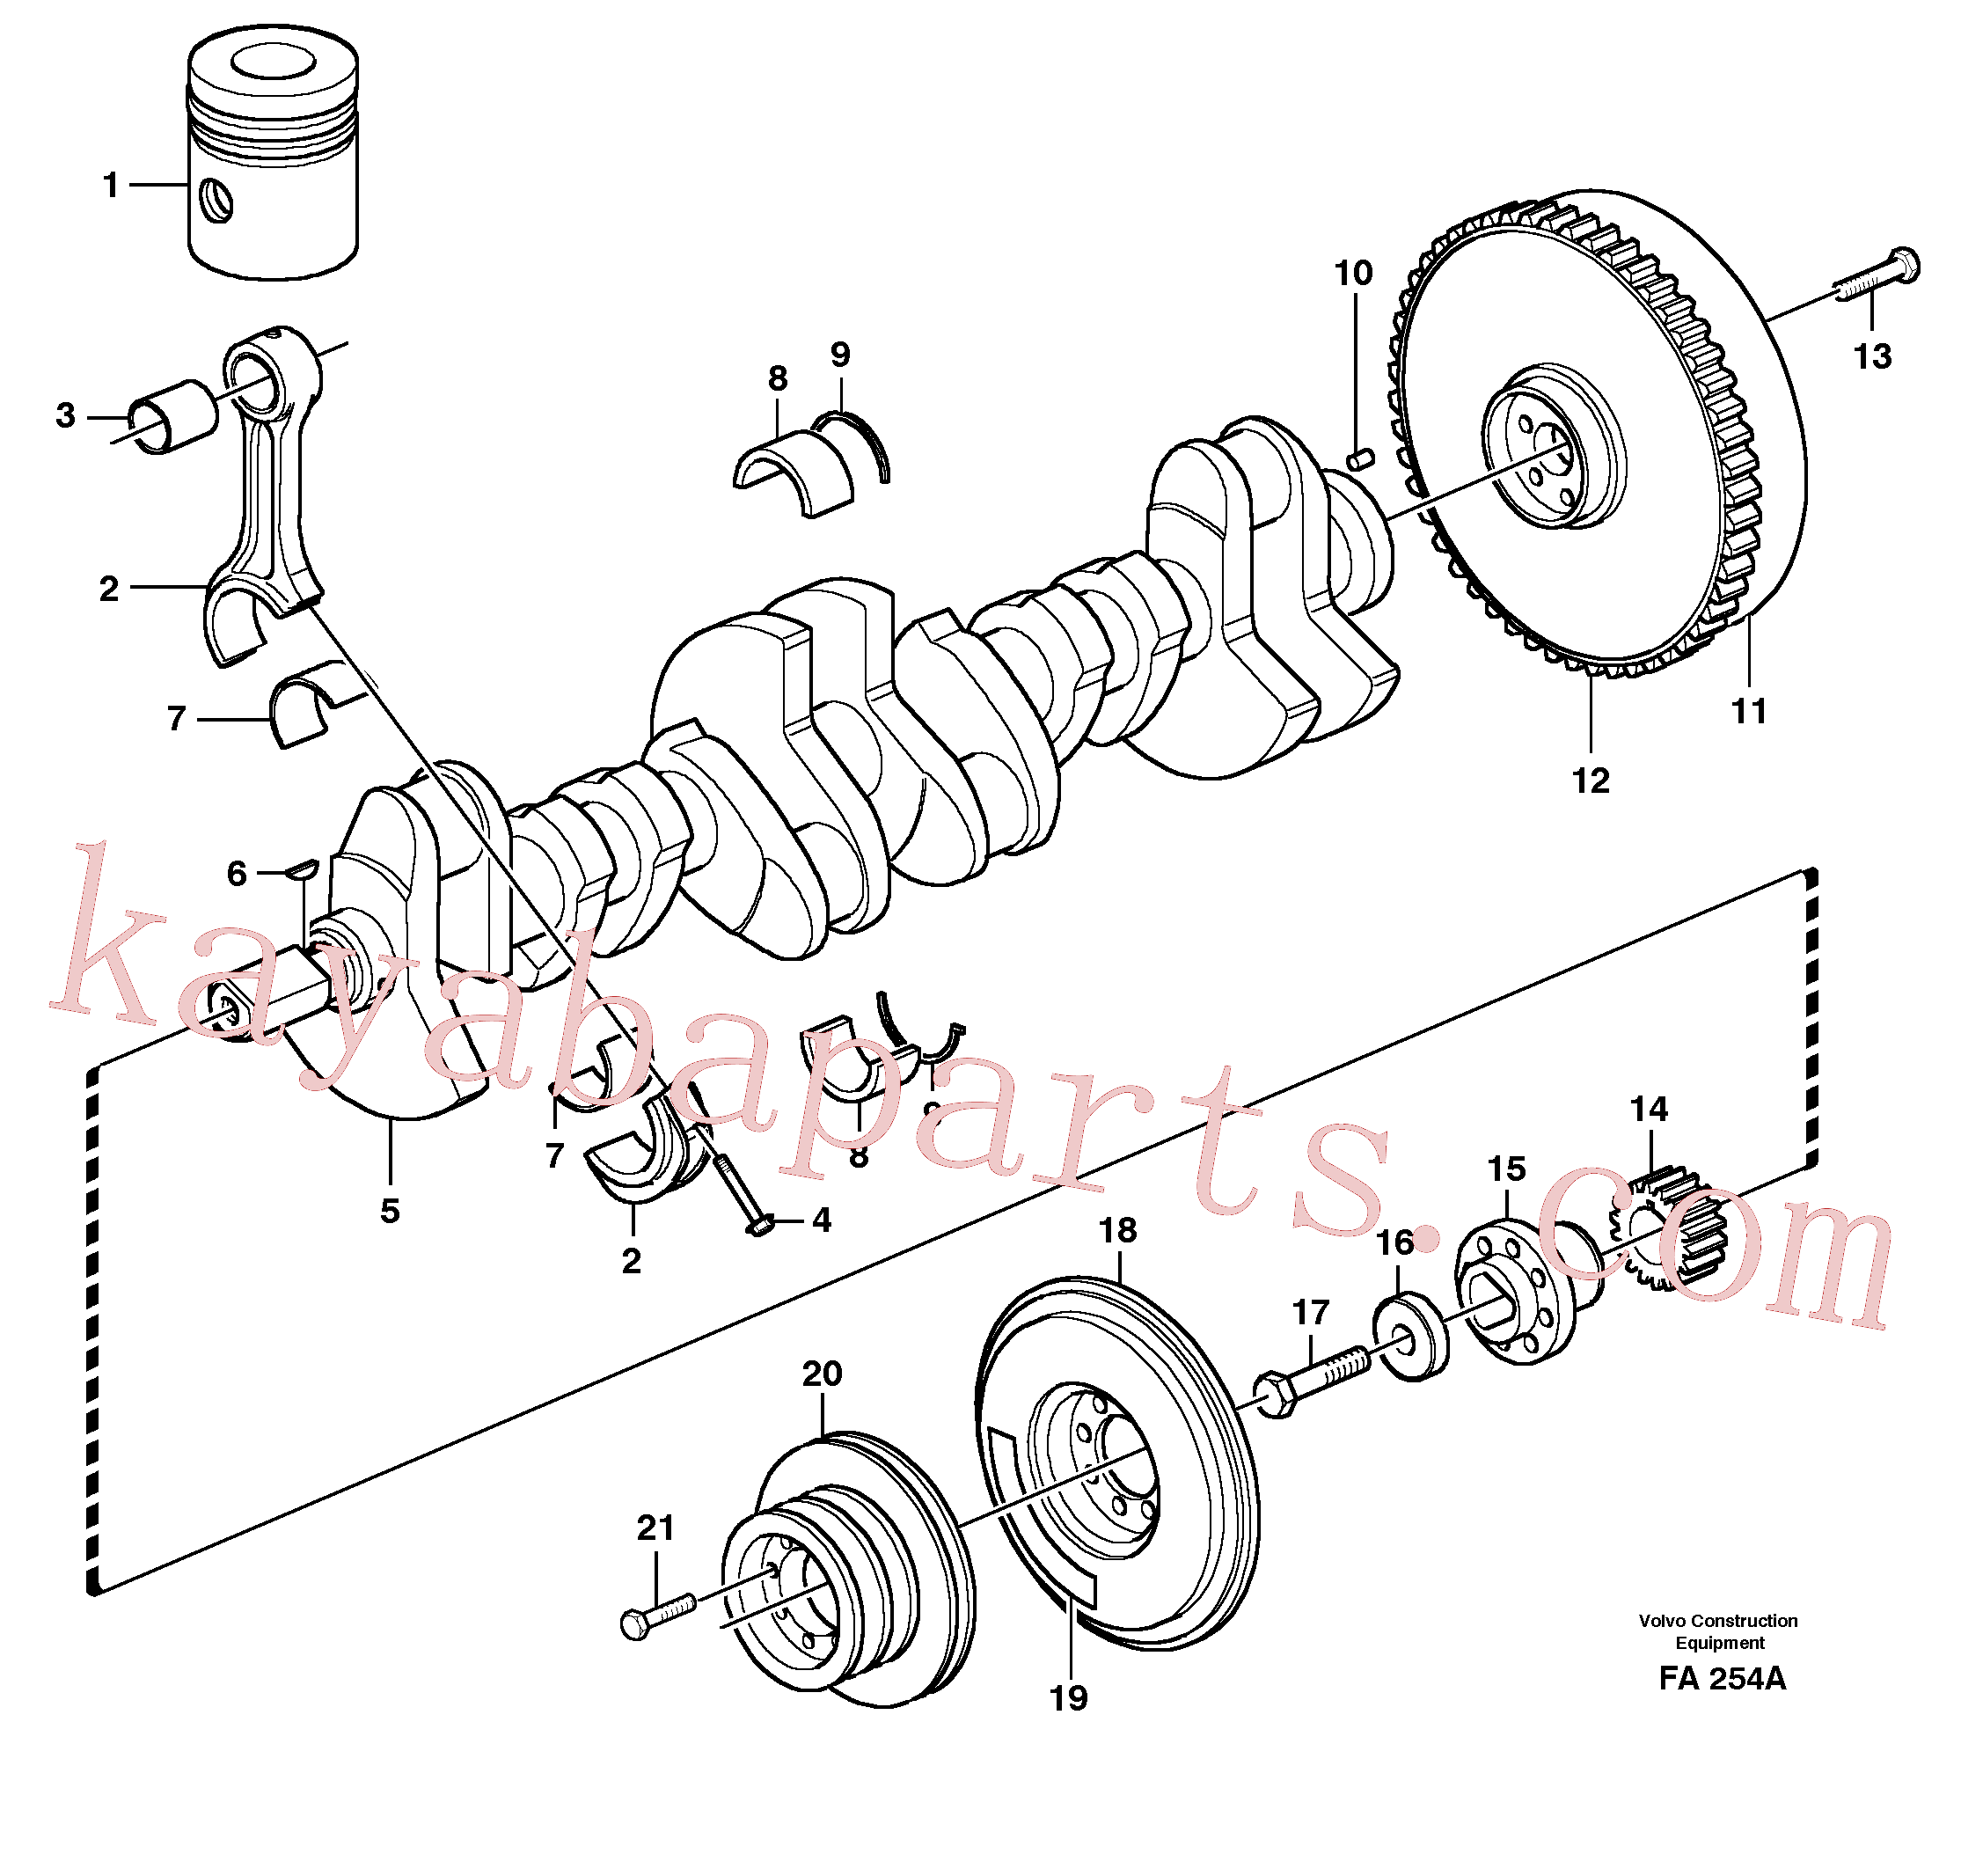 SA9324-21617 for Volvo Crankshaft and related parts(FA254A assembly)